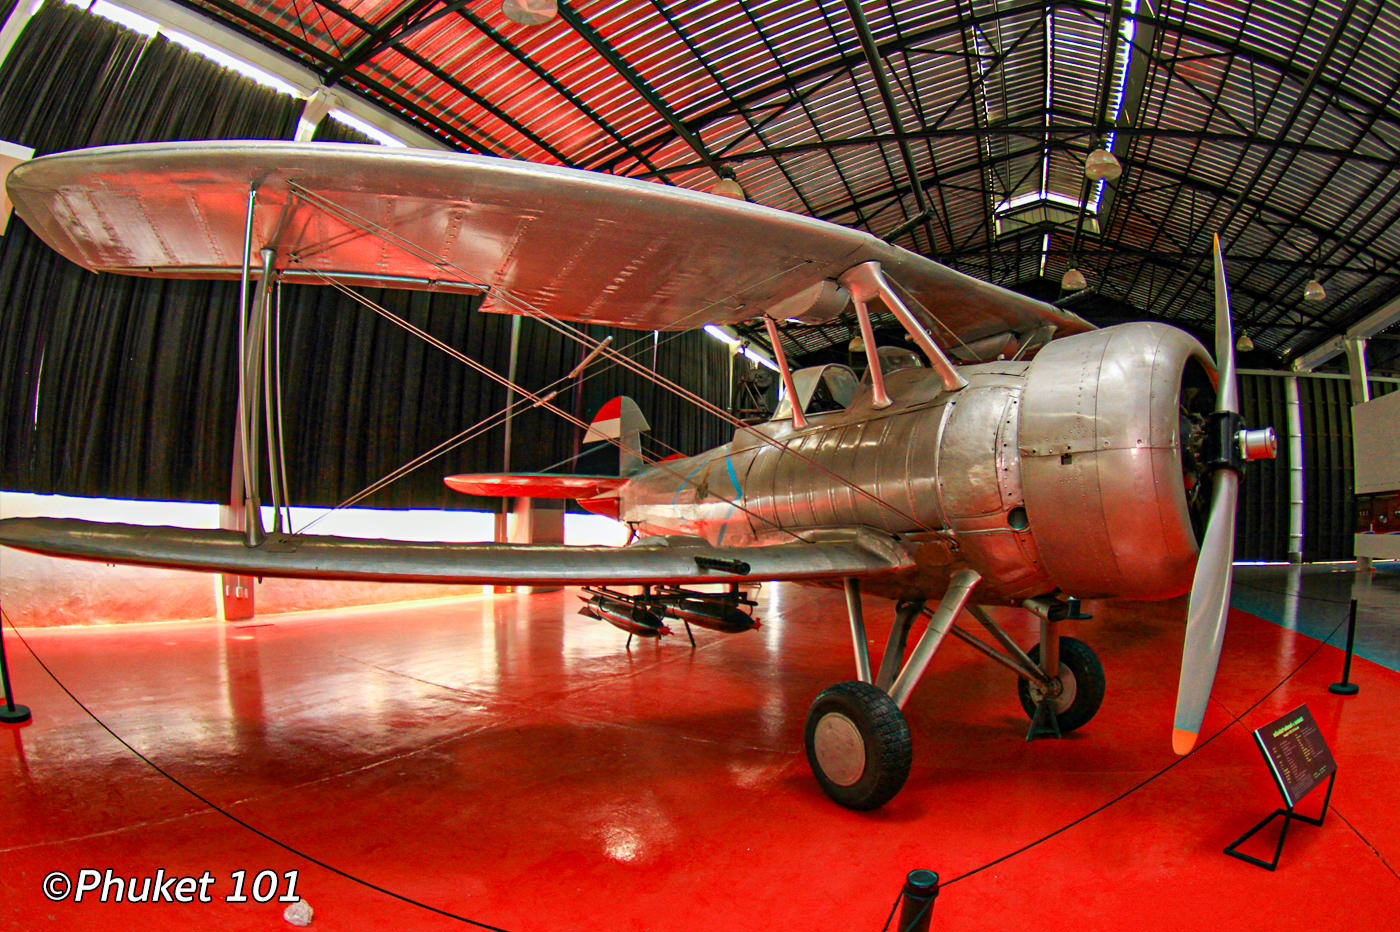 Royal Thai Air Force Museum